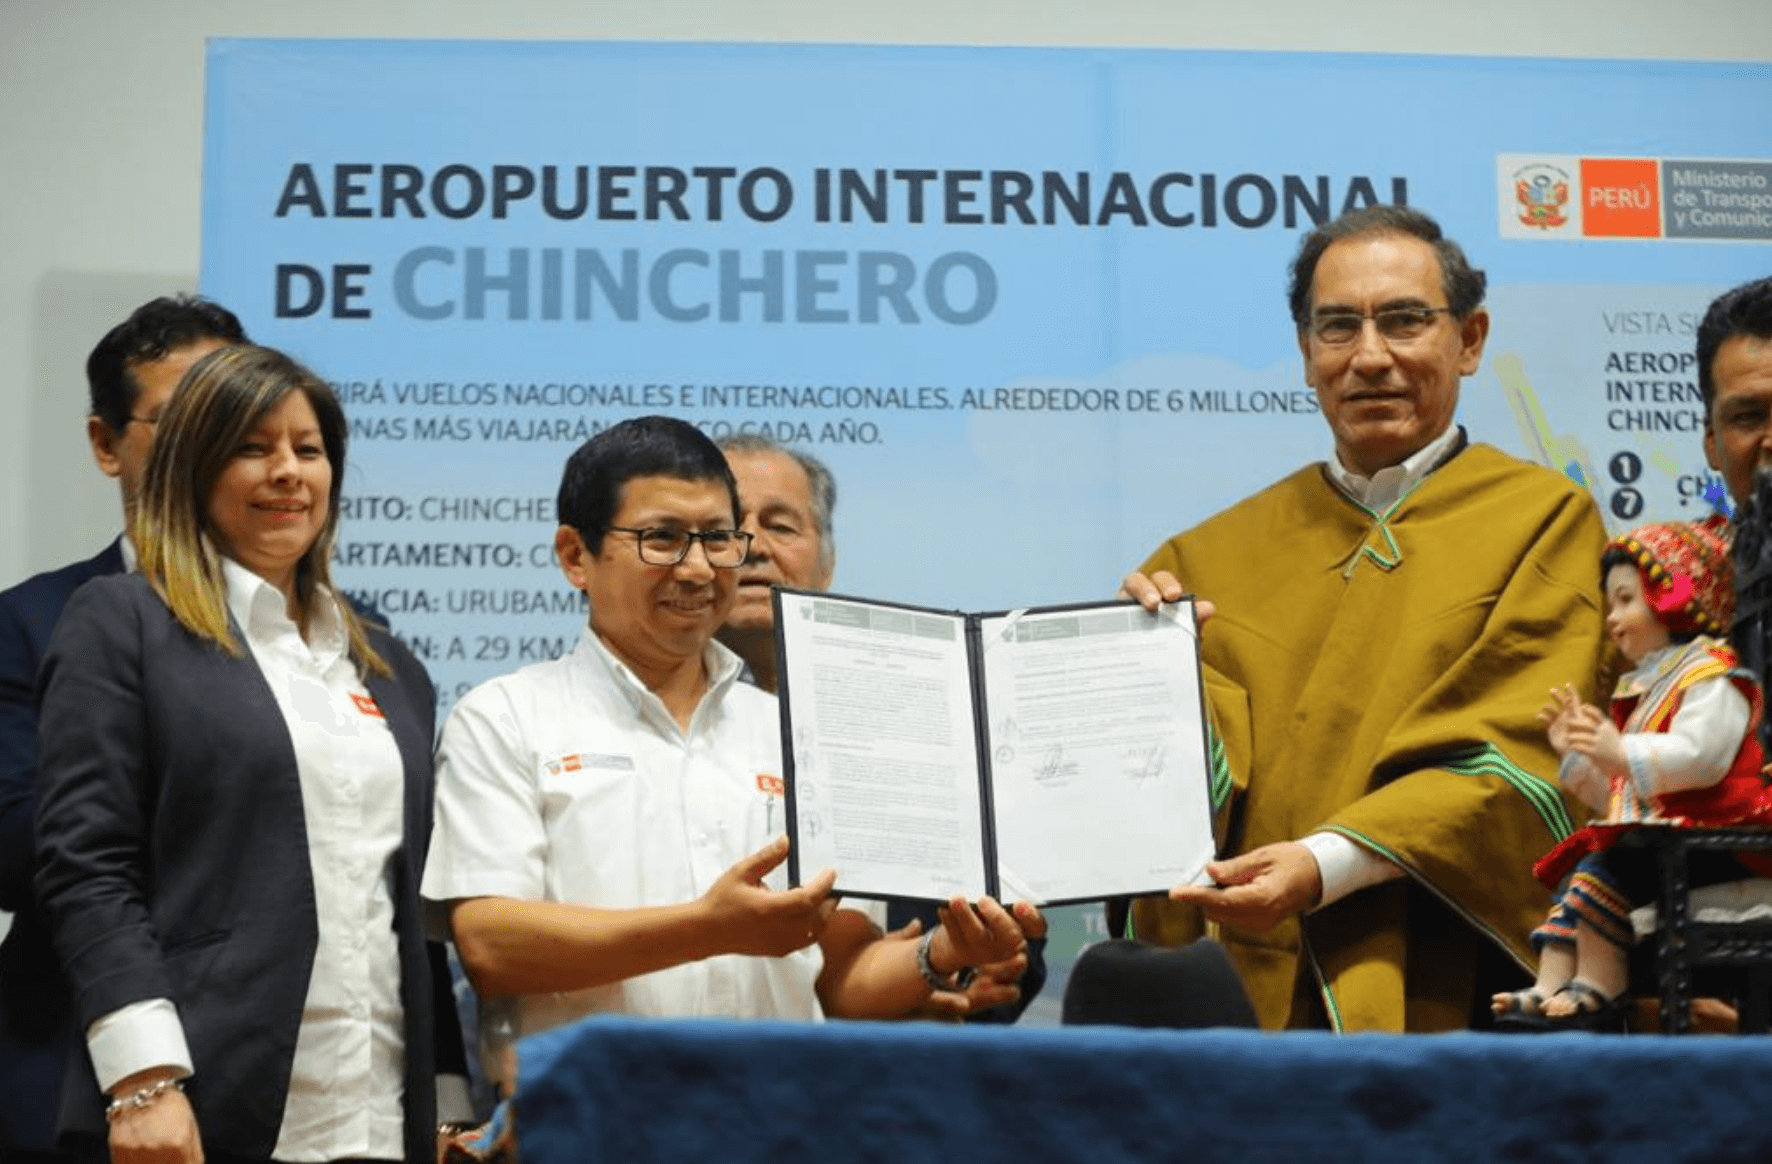 Construction of Chinchero Airport in Cusco passes first step with government authorization